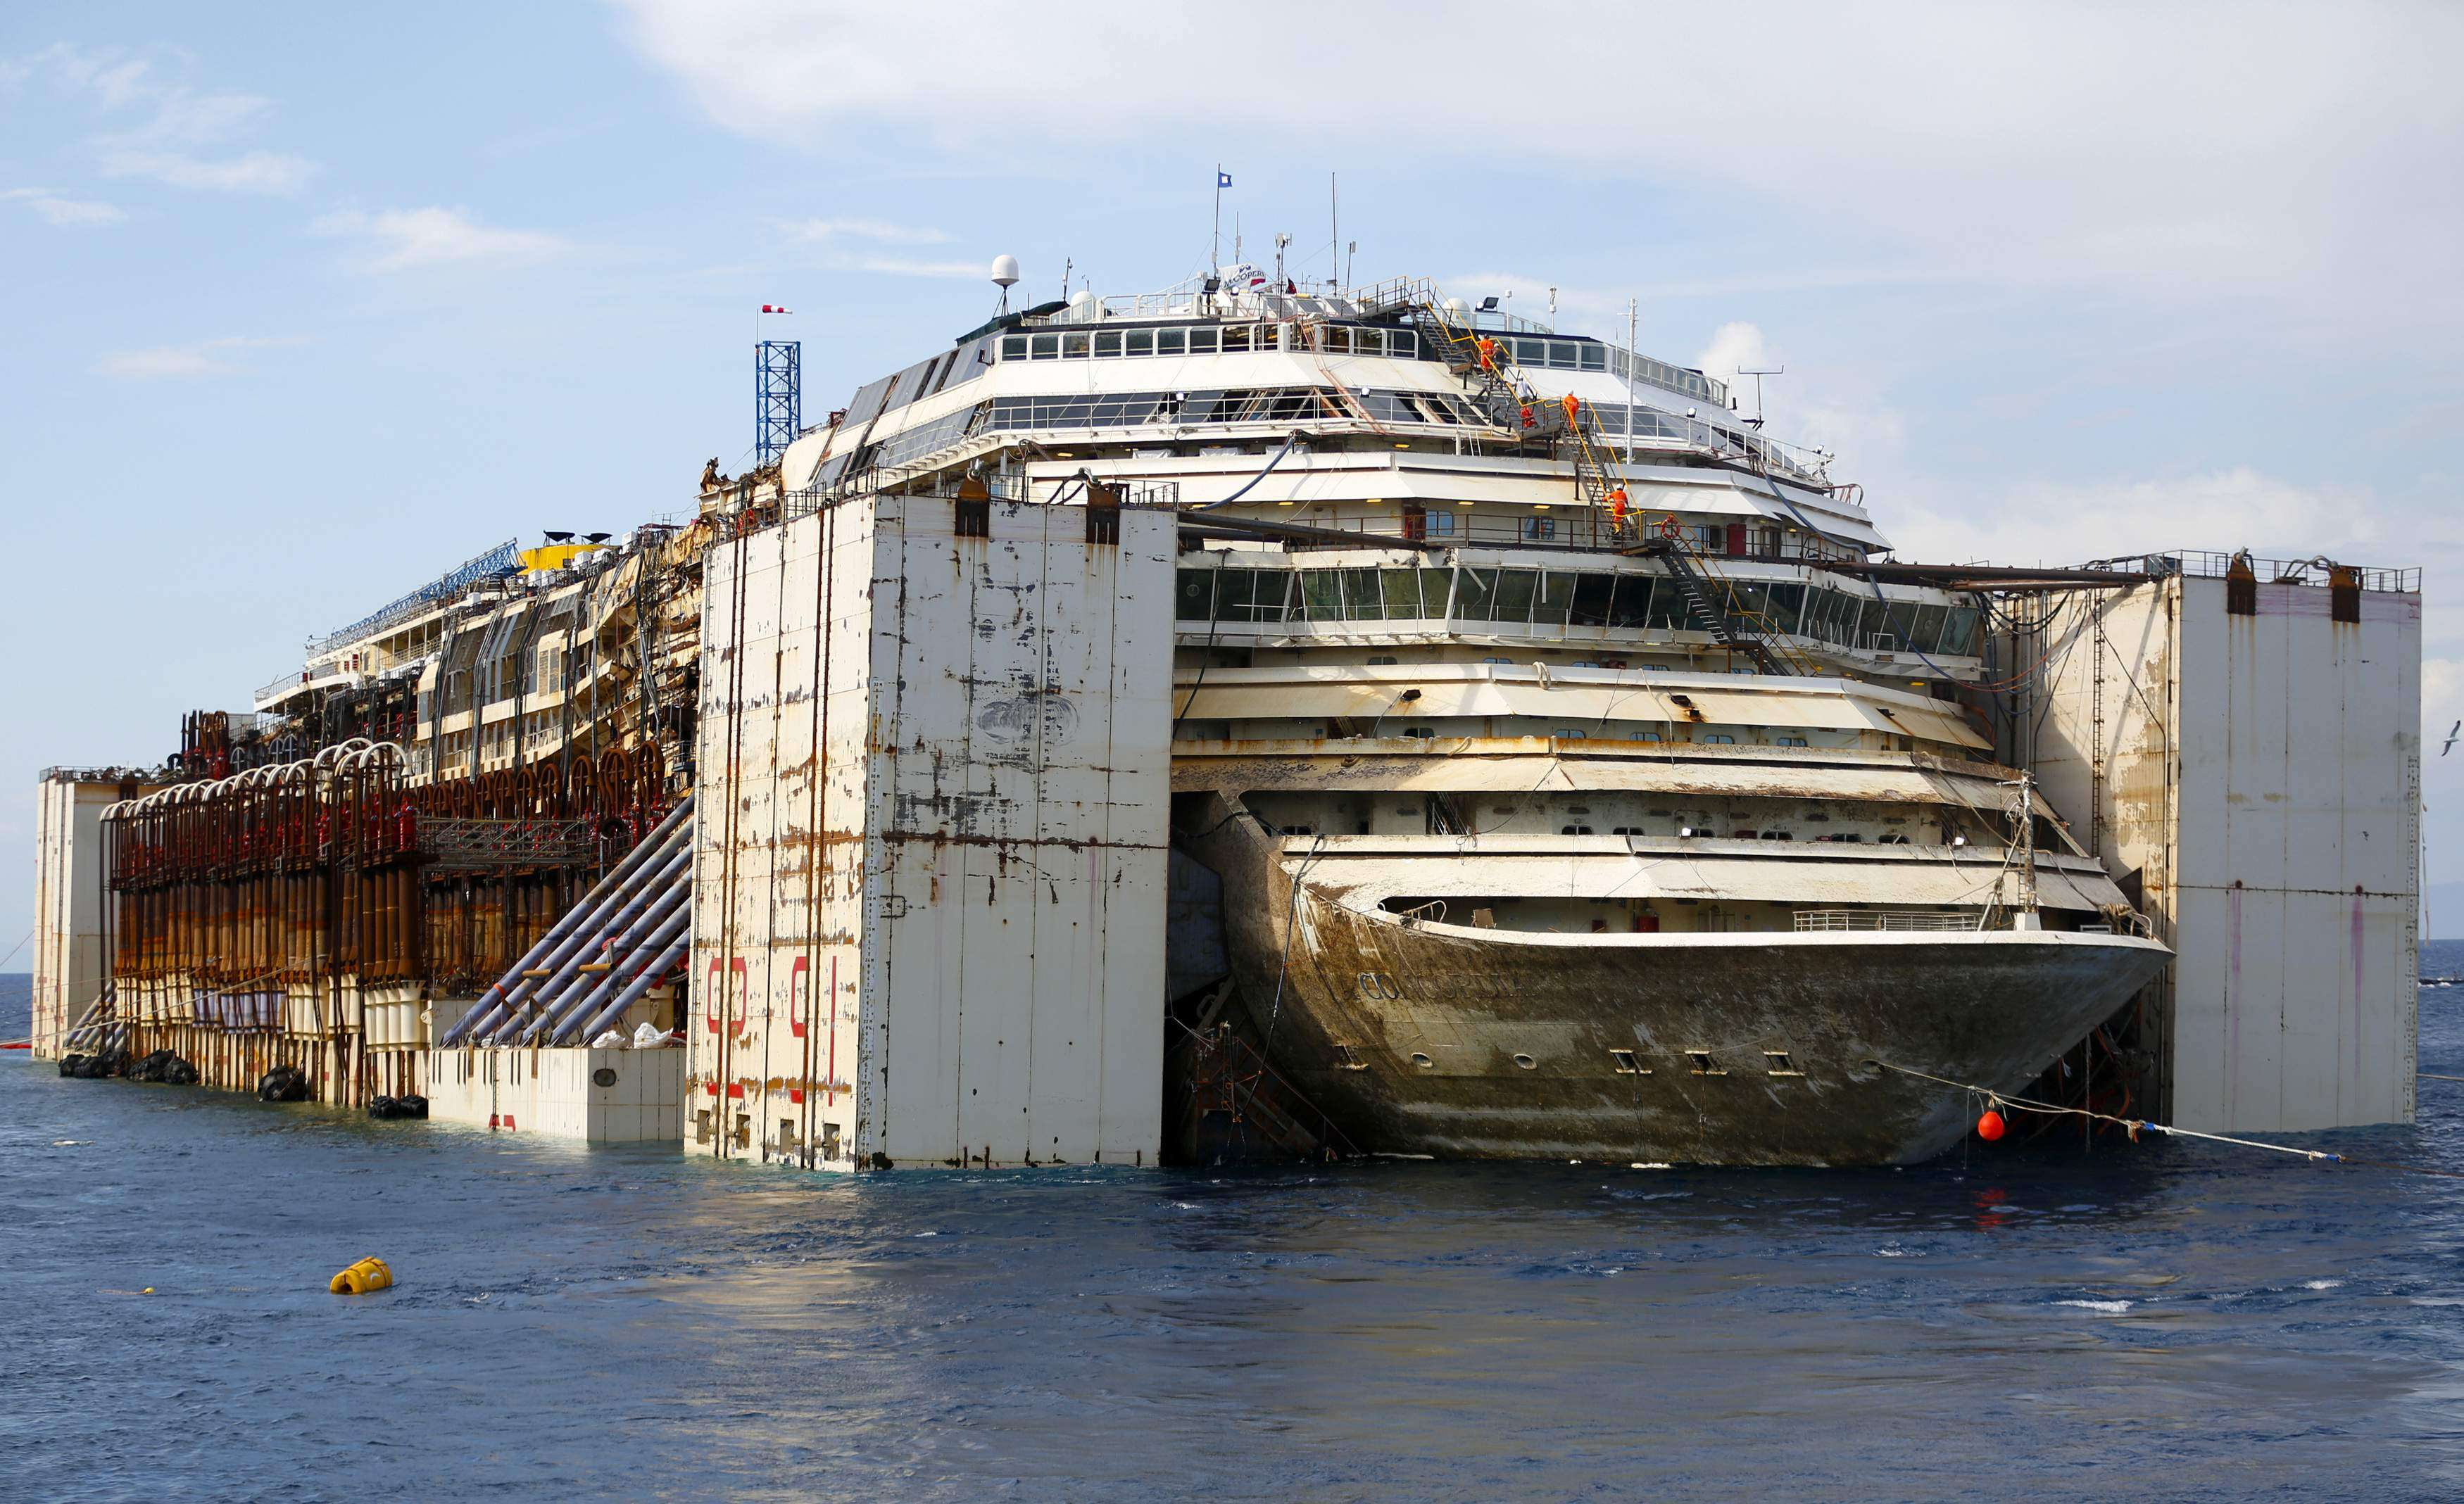 The Costa Concordia cruise liner is seen during its refloat operation at Giglio harbour July 22, 2014. The massive hulk of the Costa Concordia is nearly ready to be towed away from the Italian island where it struck a rock and capsized two-and-a-half years ago, killing 32 people, officials said on Sunday. The 114,500-tonne Concordia has been slowly lifted from the sea floor since Monday, when salvagers began pumping air into 30 large metal boxes, or sponsons, attached around the hull. A convoy of 14 vessels will then tow the Concordia to a port near Genoa, where it will be broken up for scrap, completing one of the biggest maritime salvage operations in history. REUTERS/Max Rossi (ITALY - Tags: DISASTER MARITIME TPX IMAGES OF THE DAY) Foto: MAX ROSSI/REUTERS